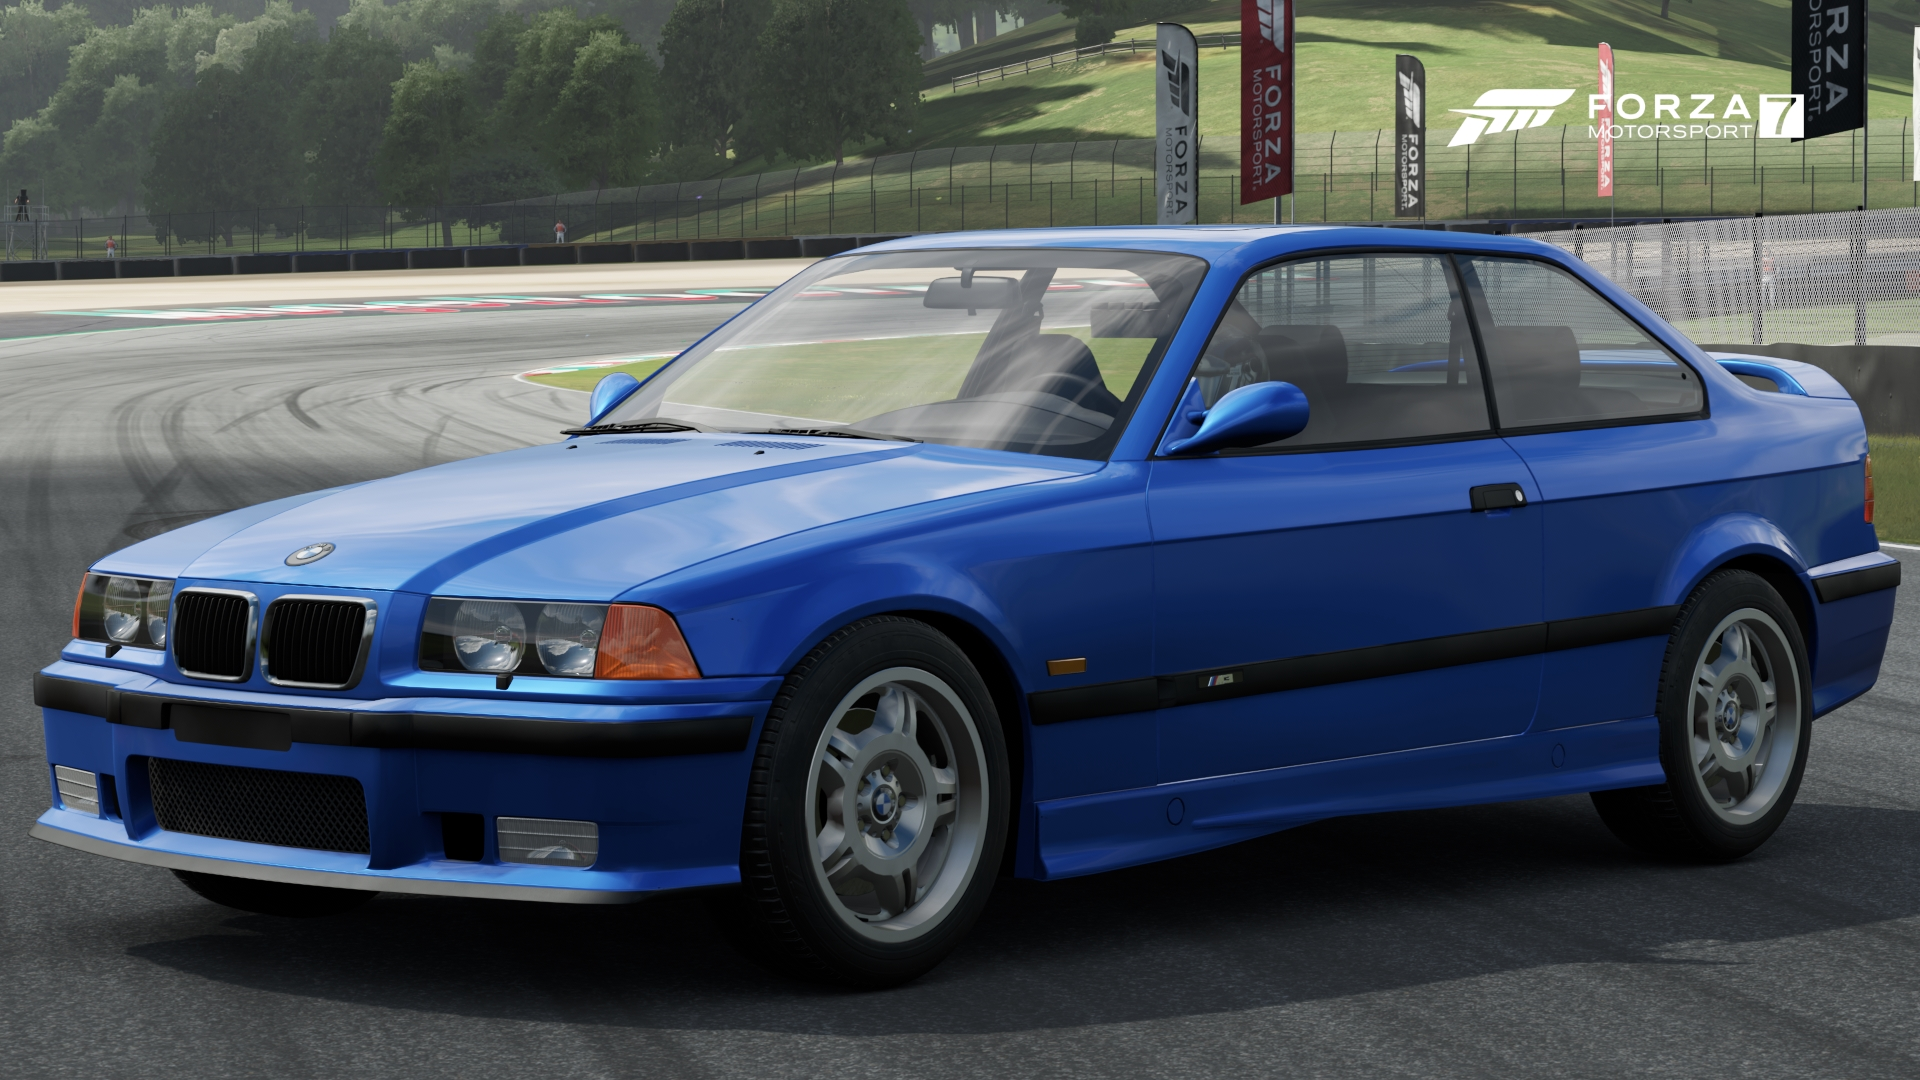 3 Series Bmw Bmw 3 Series Review 2017 Autocar Bmw M3 1997 Forza Motorsport Wiki Fandom Powered